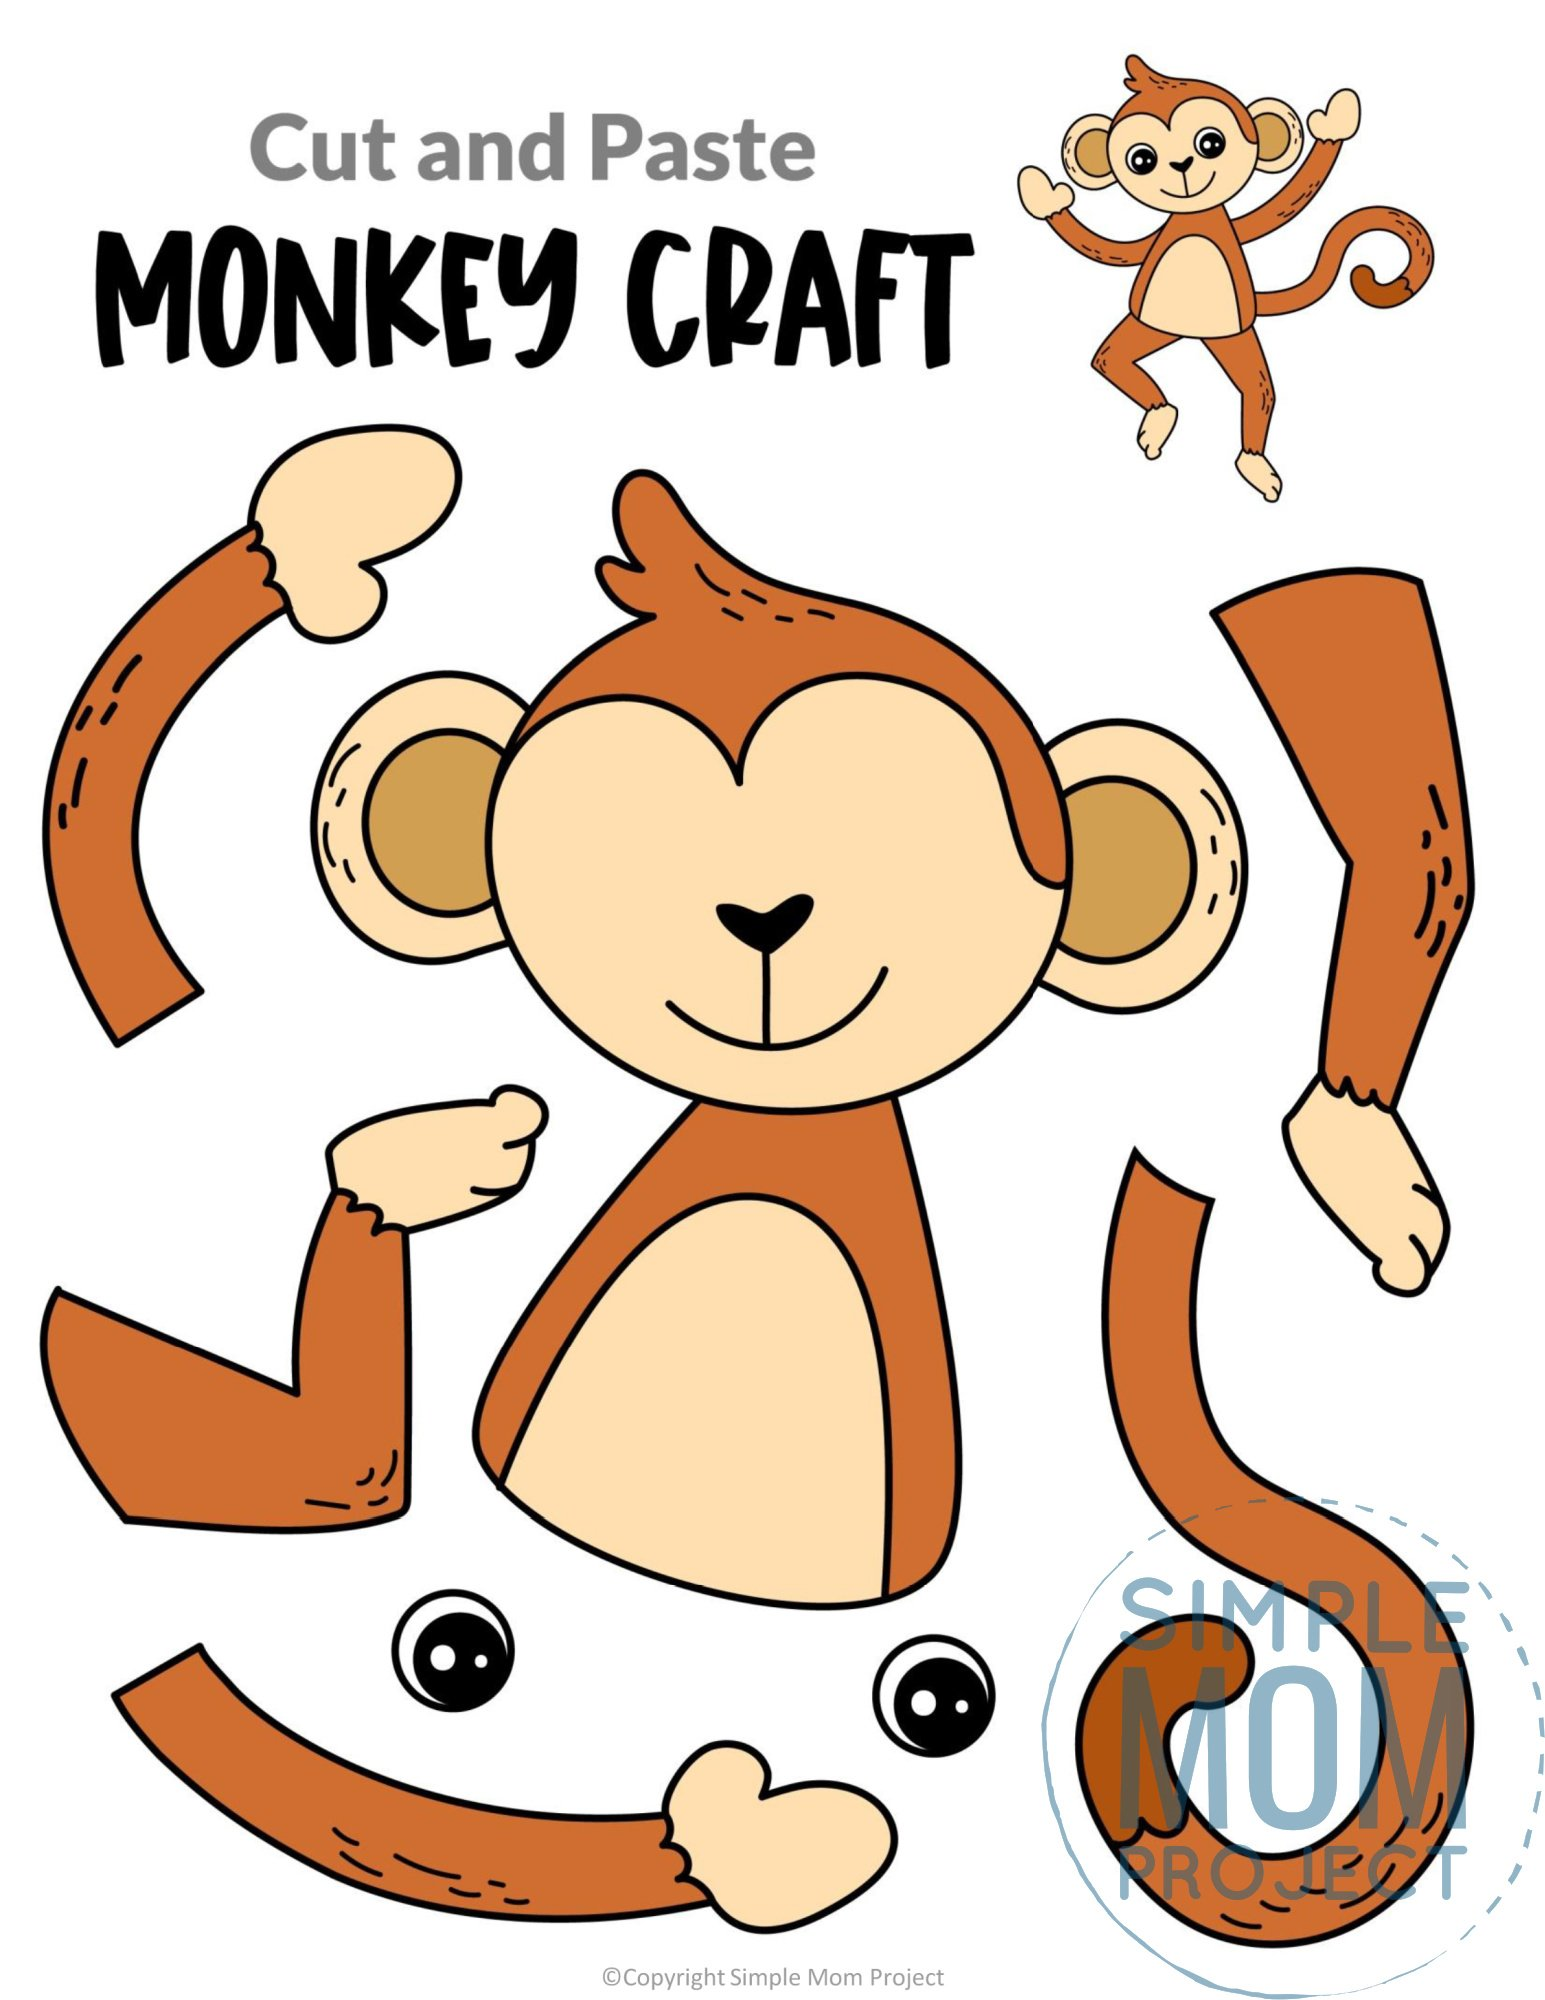 Monkey Cut and Paste Craft for Toddlers, Preschoolers and Kindergarteners